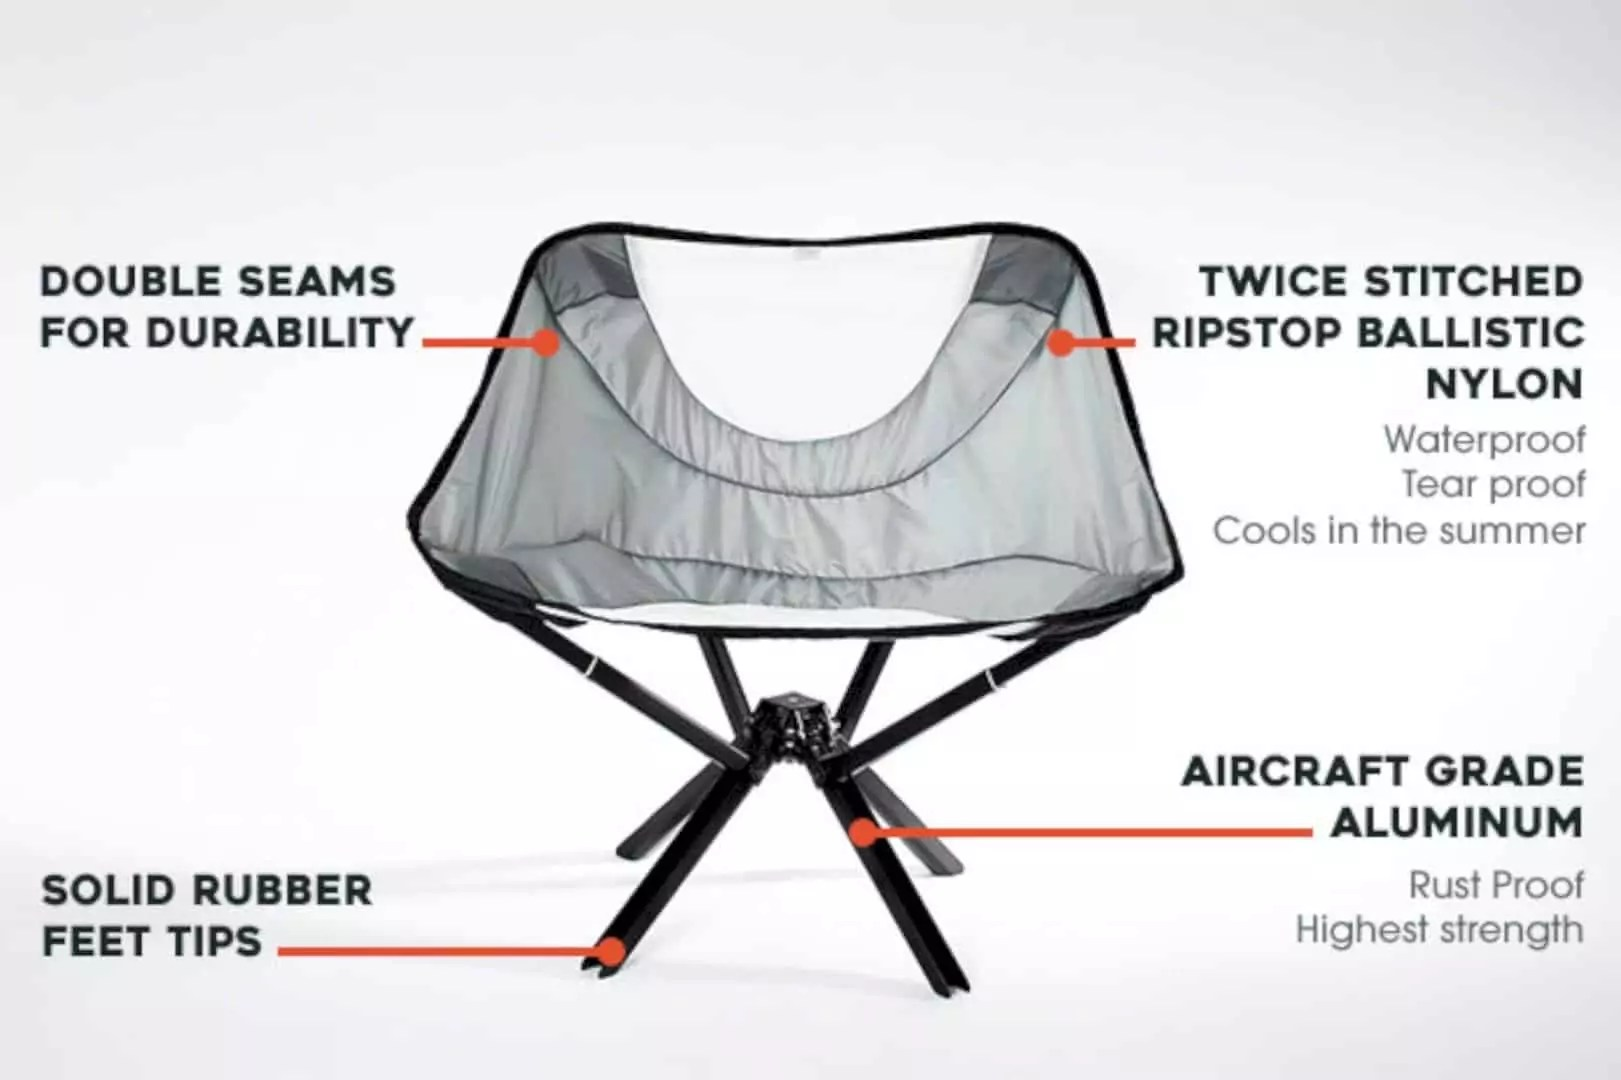 Go Chair: The Smallest Portable Chair Ever